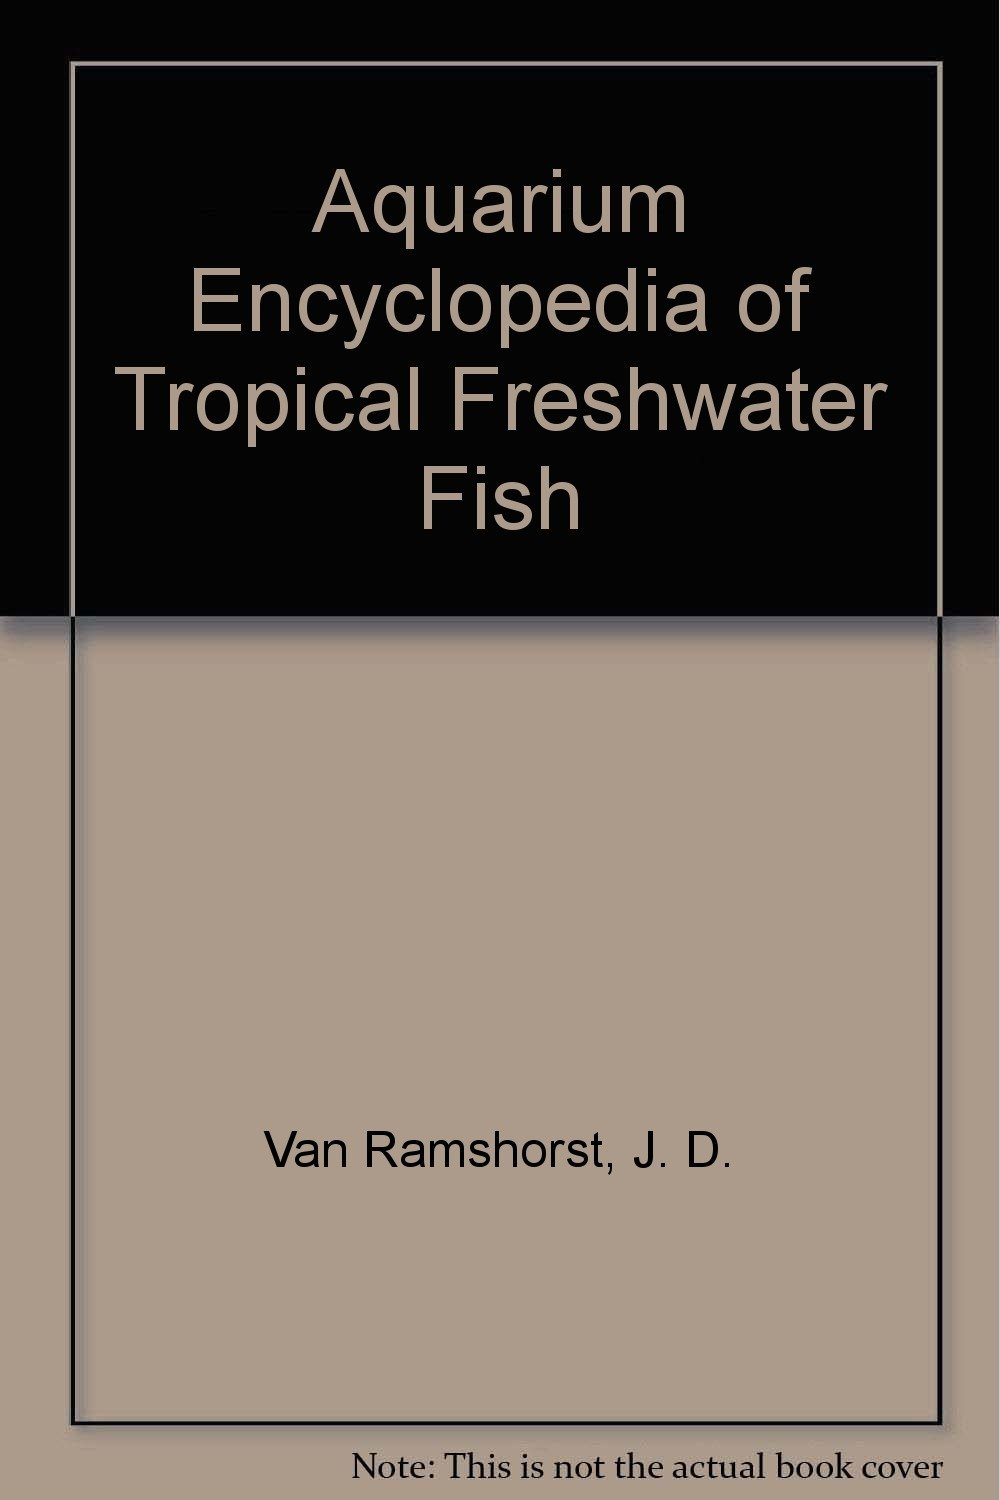 Aquarium Encyclopedia of Tropical Freshwater Fish